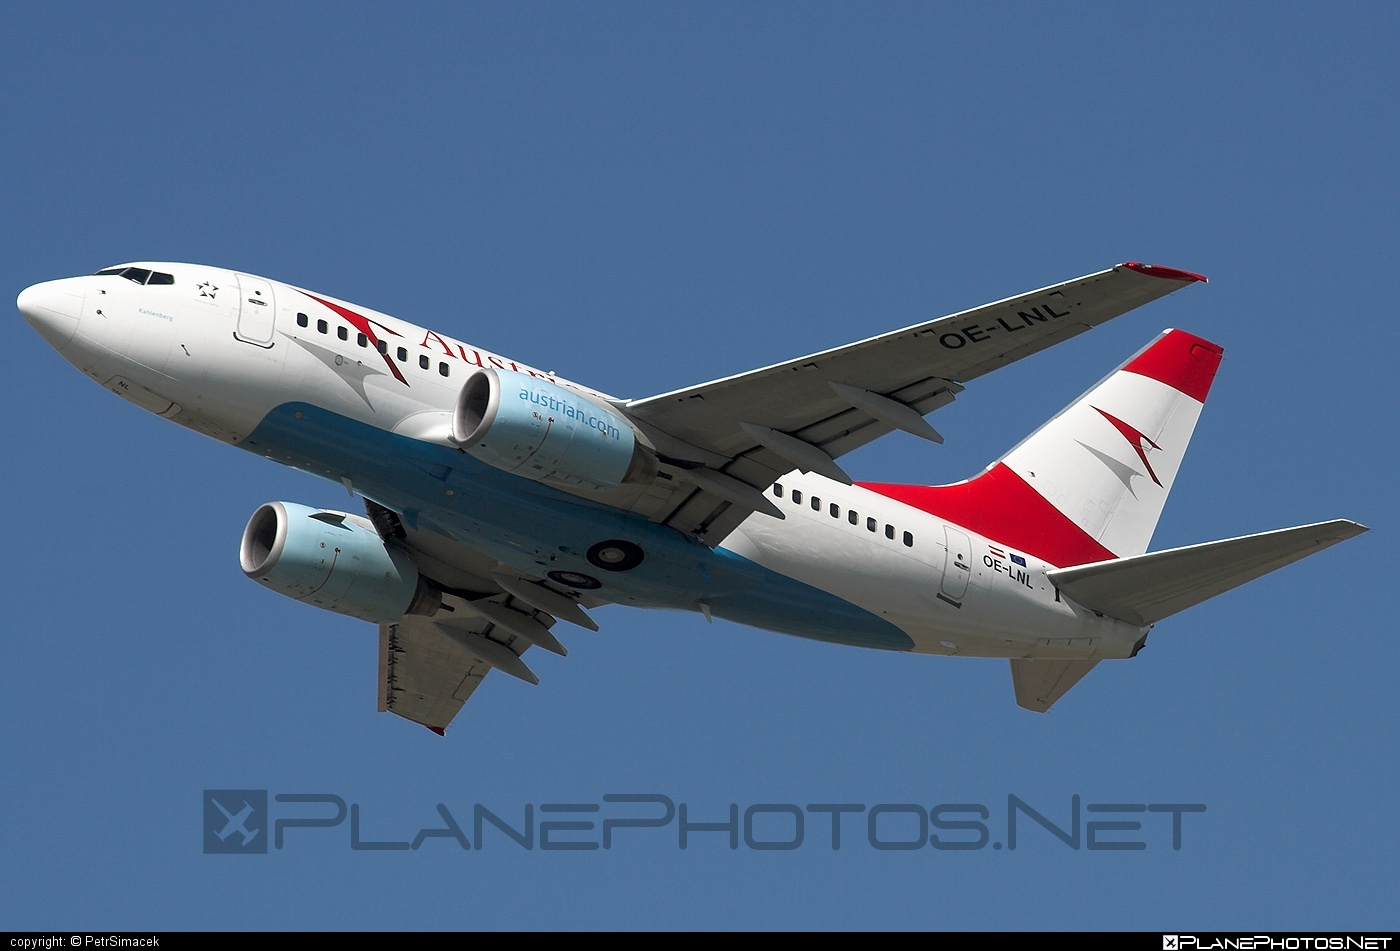 Boeing 737-600 - OE-LNL operated by Austrian Airlines #b737 #b737nextgen #b737ng #boeing #boeing737